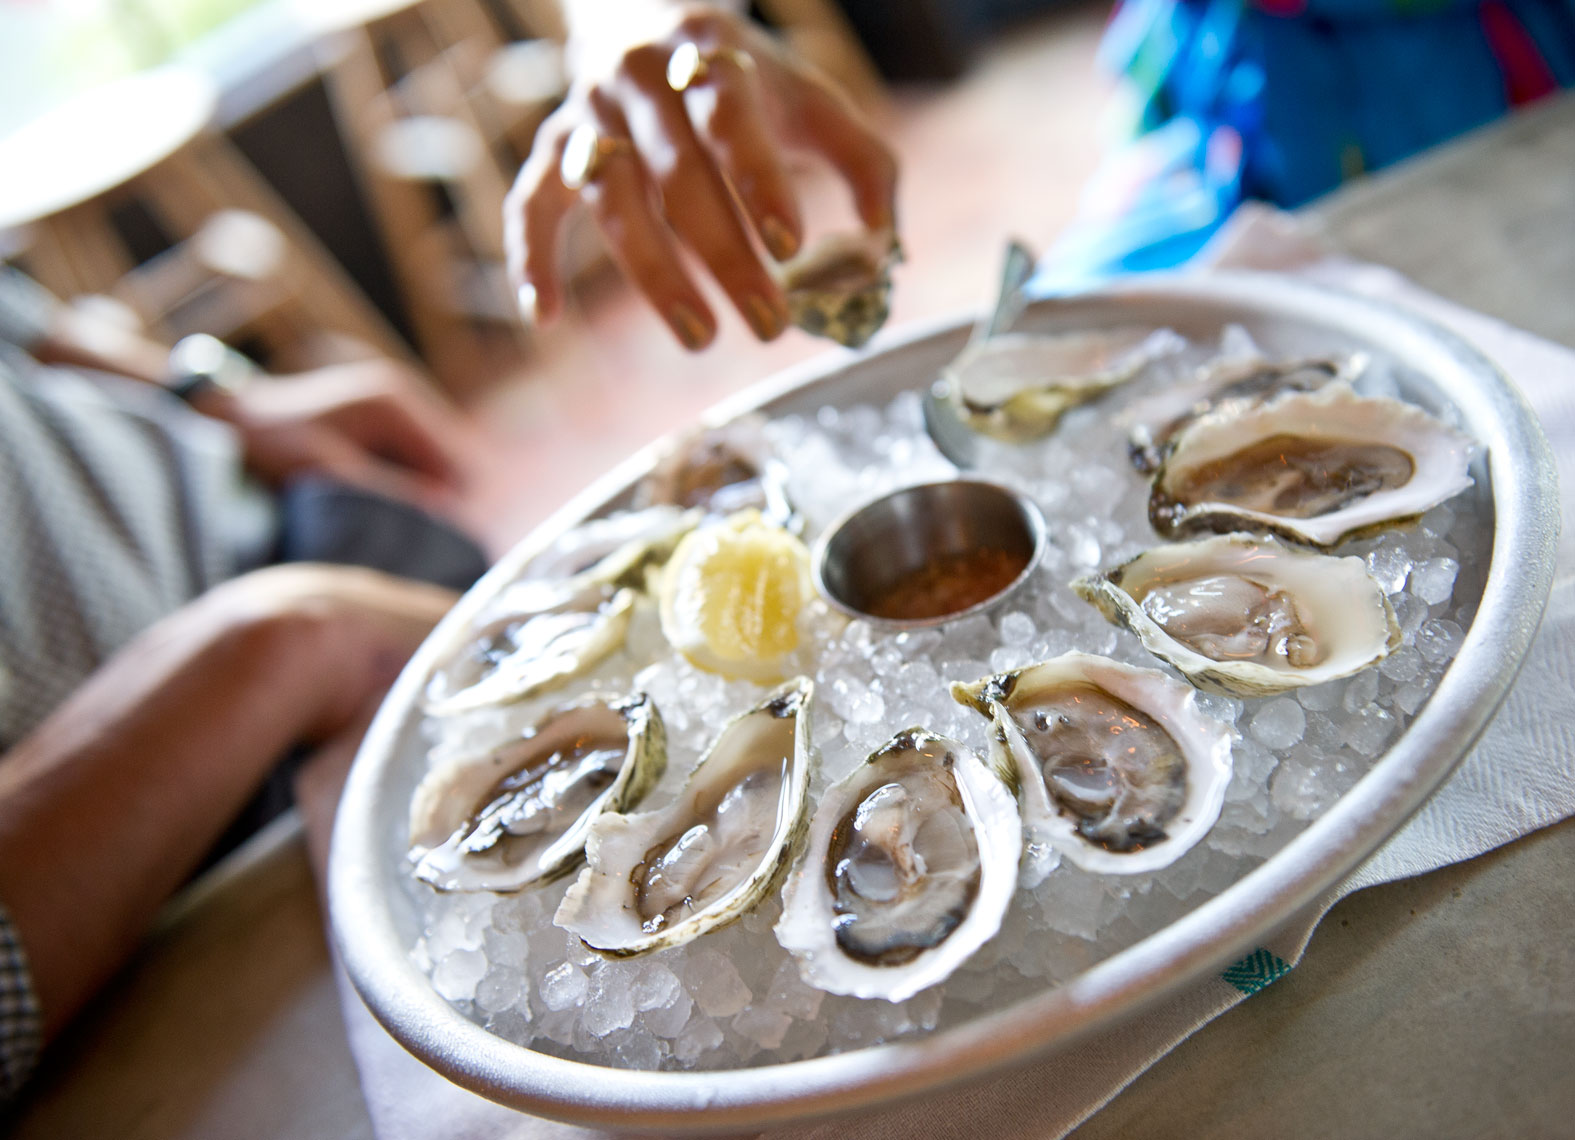 NYC Food Photographer - Summer Oyster Platter